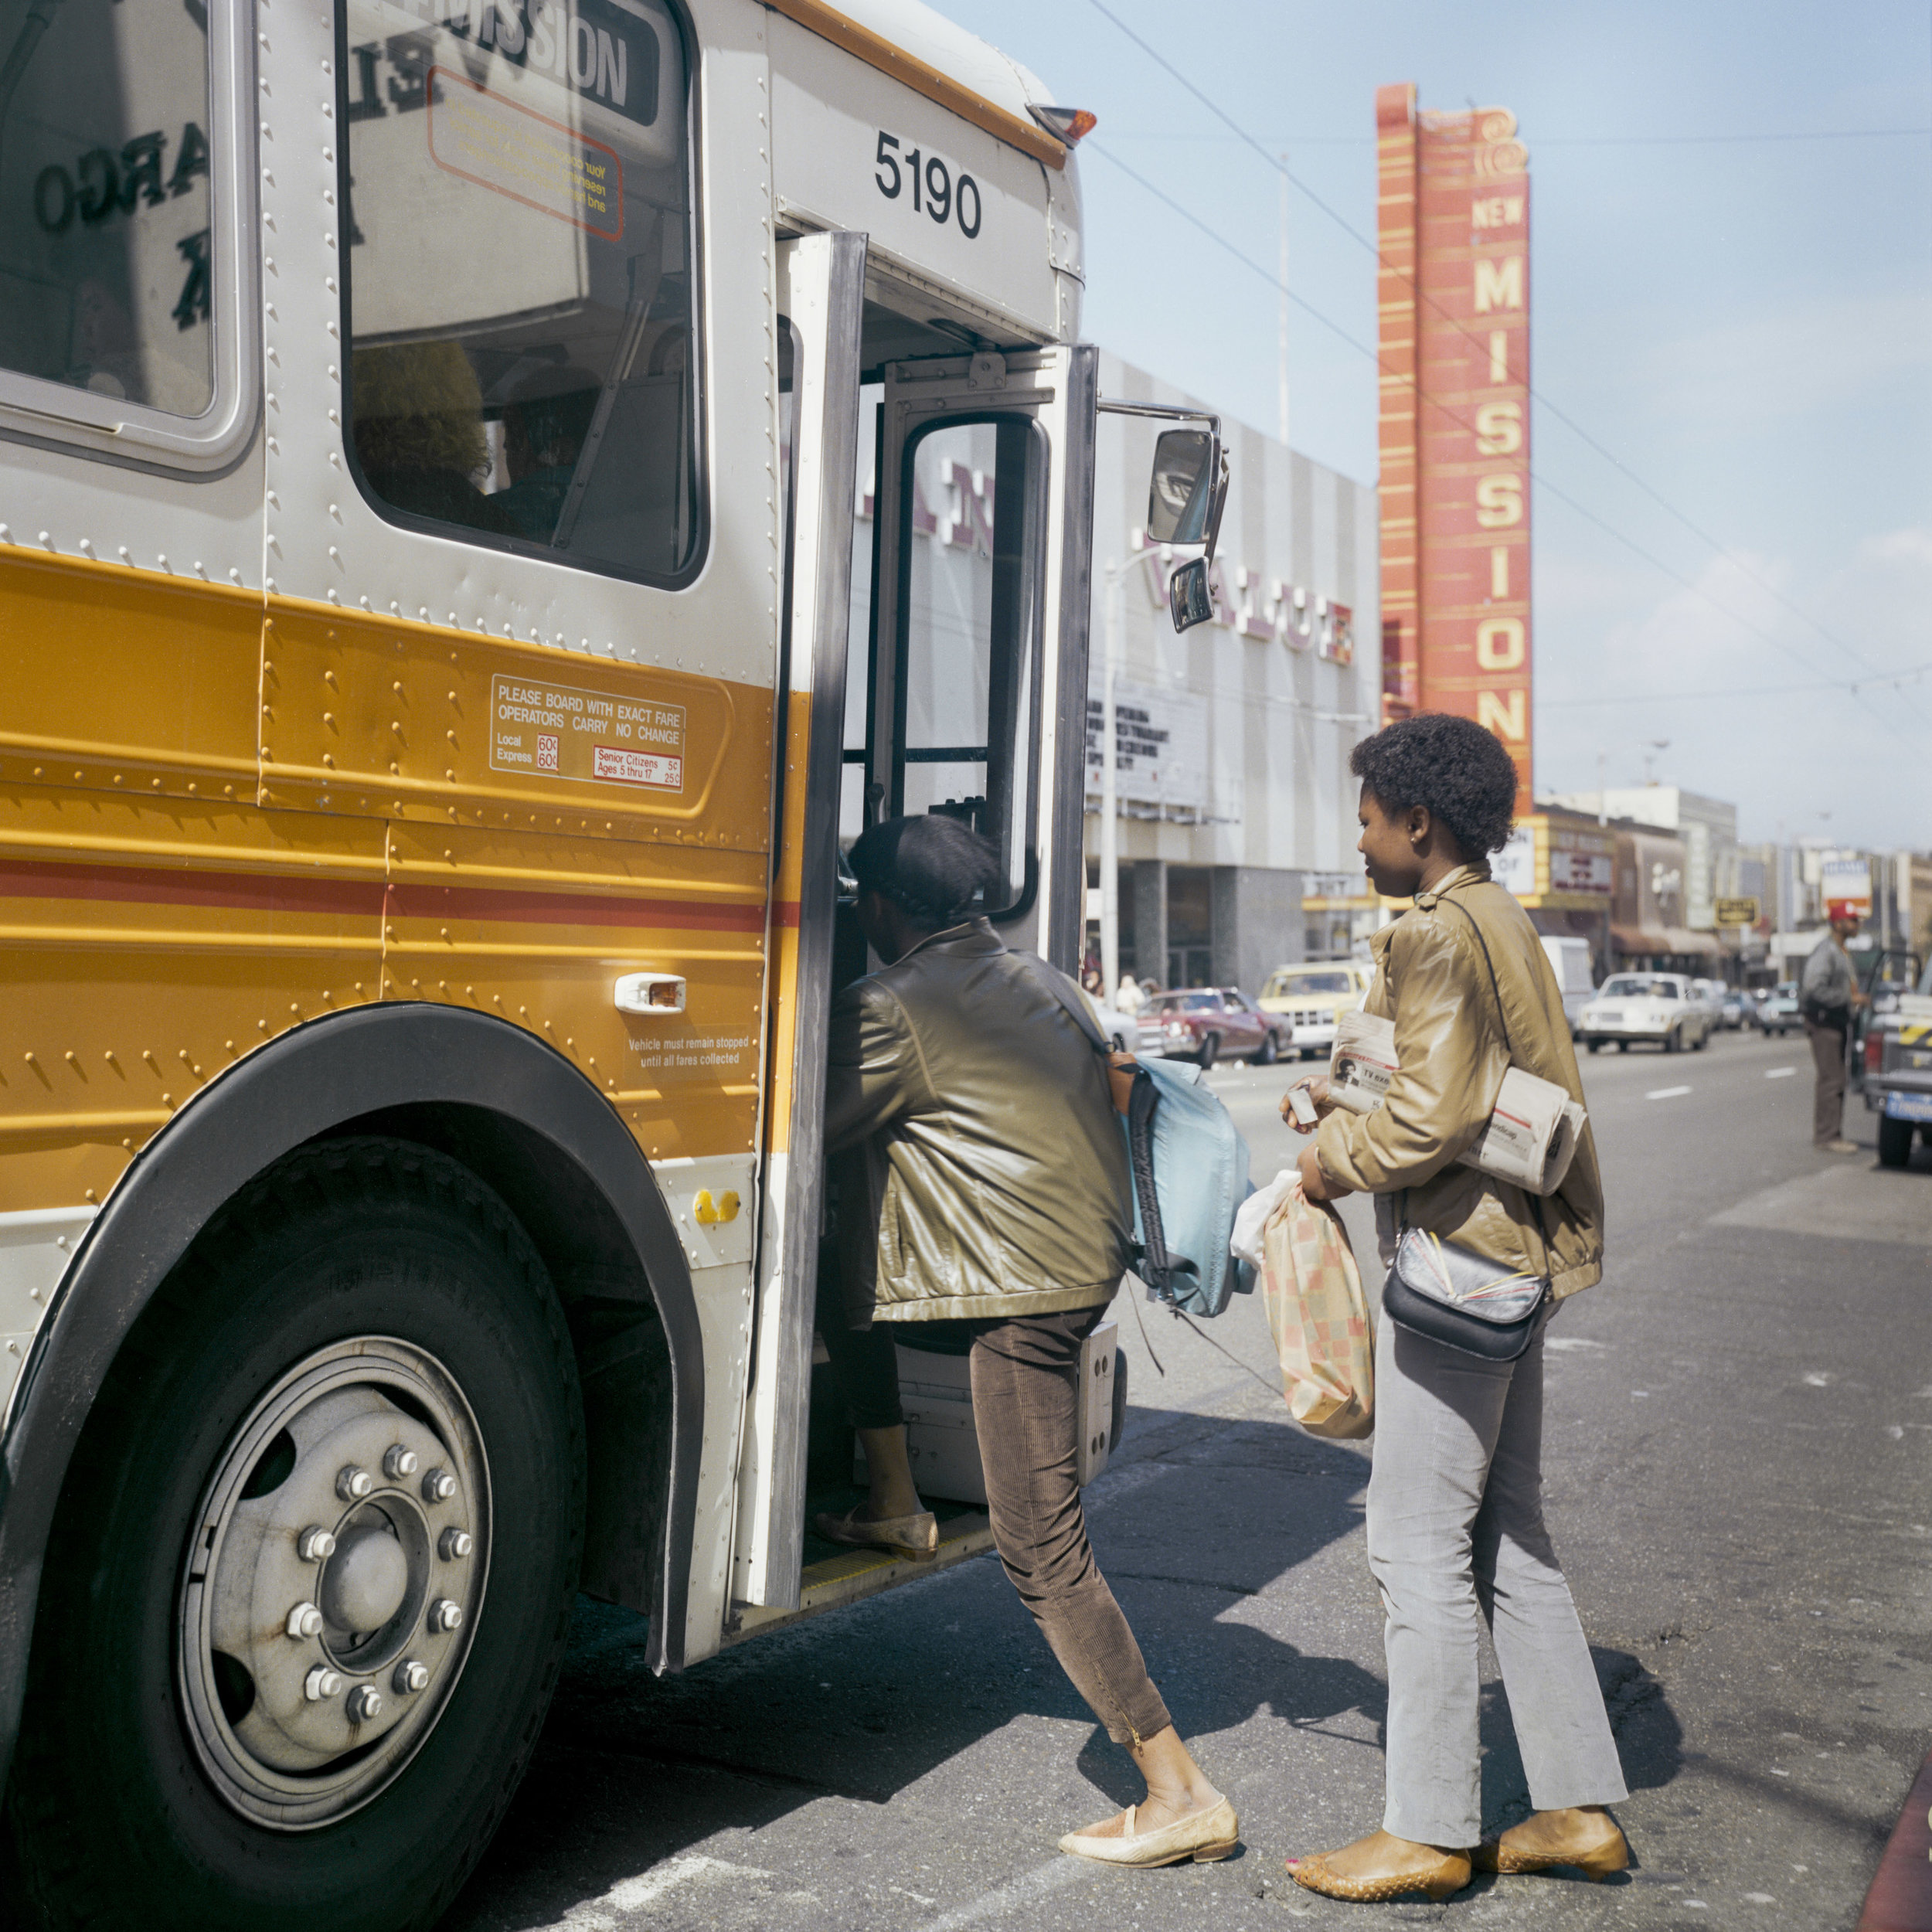 JANET DELANEY  Muni Bus, Mission Street, 1984  from  Public Matters  Archival Pigment Print, 2018  Available in 2 sizes 9 x 9 inches, edition of 7 + 2AP 15 x 15 inches, edition of 3 + 2AP